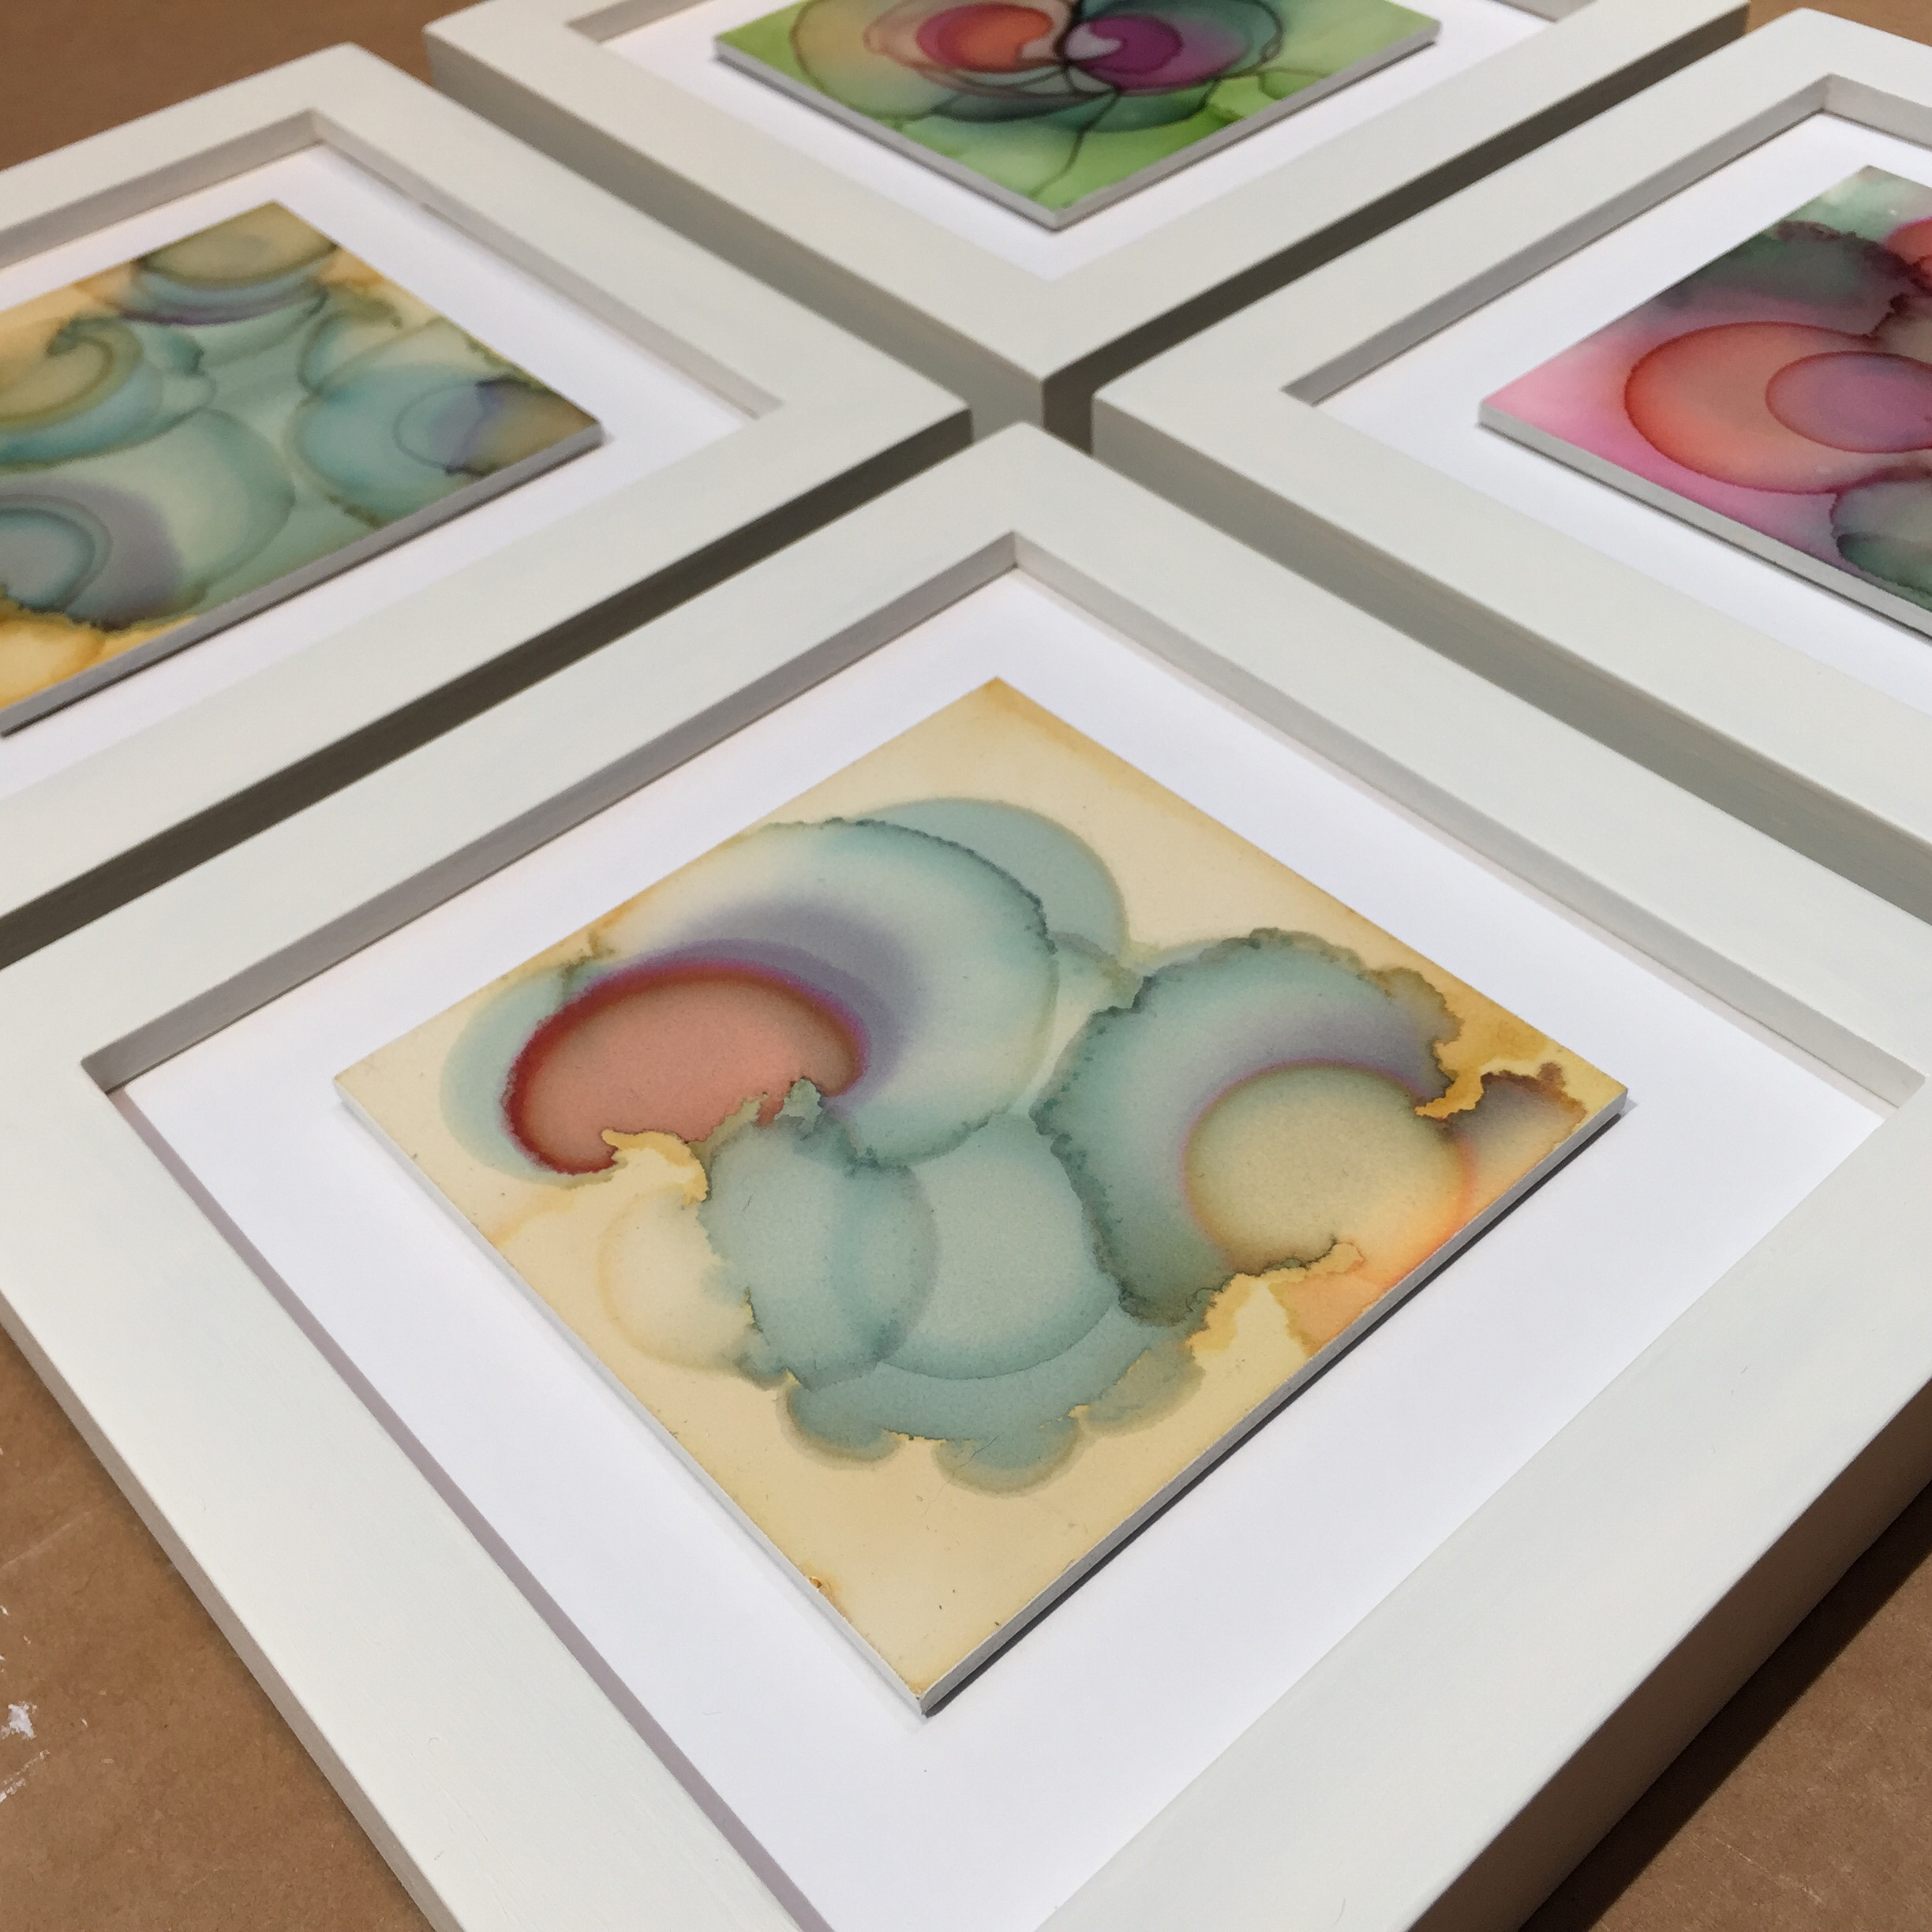 Specials Suite , float-mounted, custom painted frames, choose from 4 designs ($275 each).